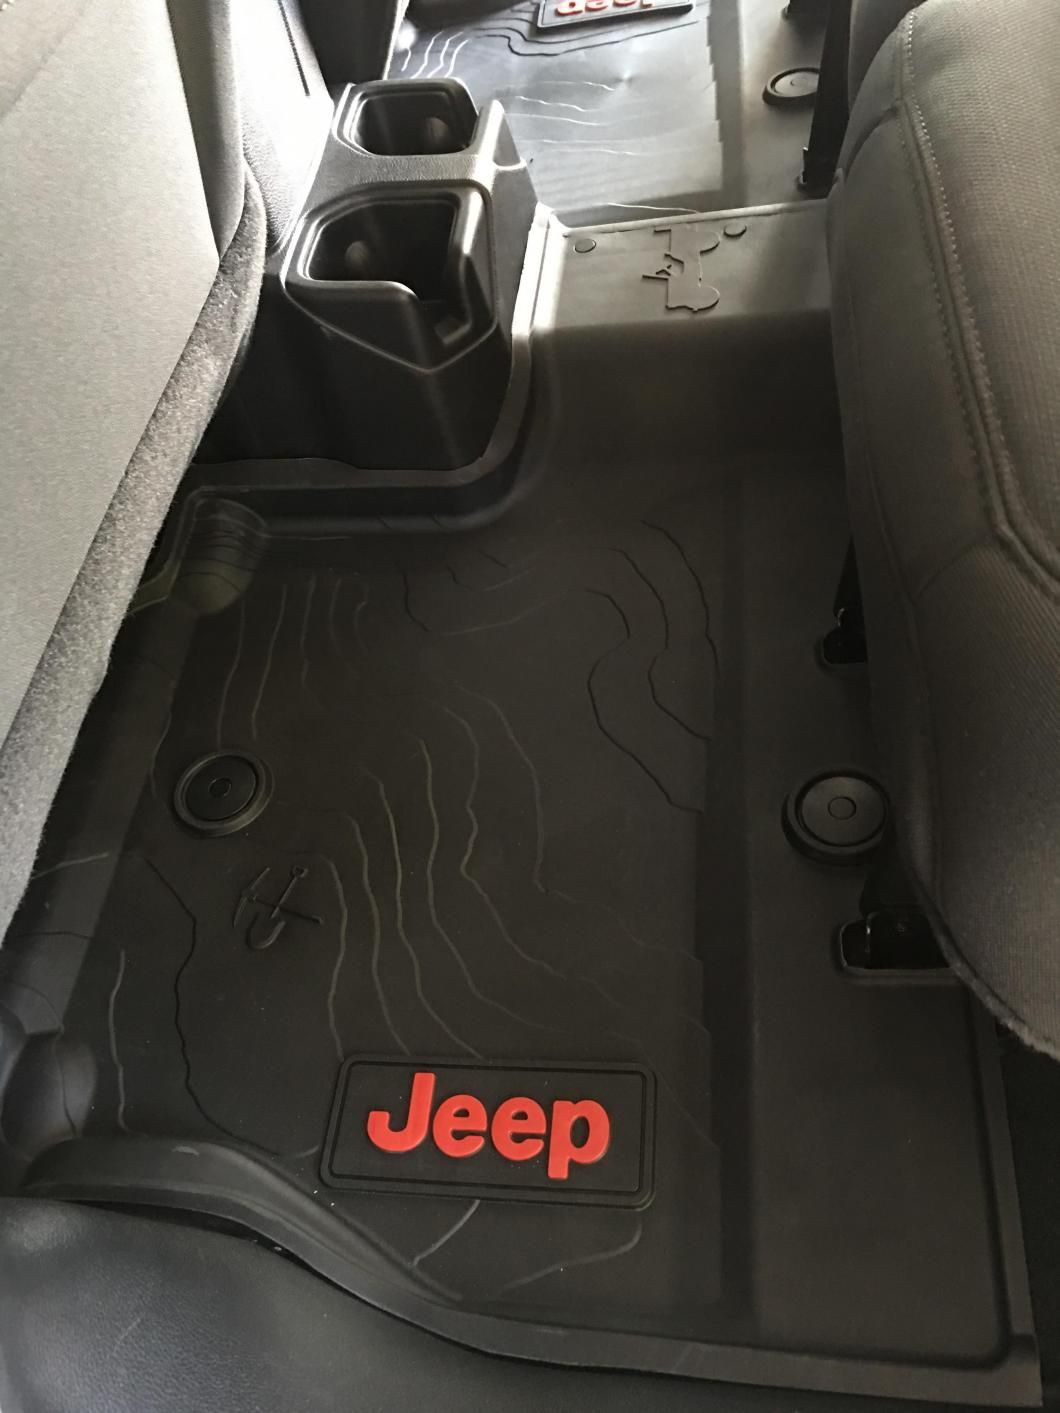 Pin On Jeep Interiors